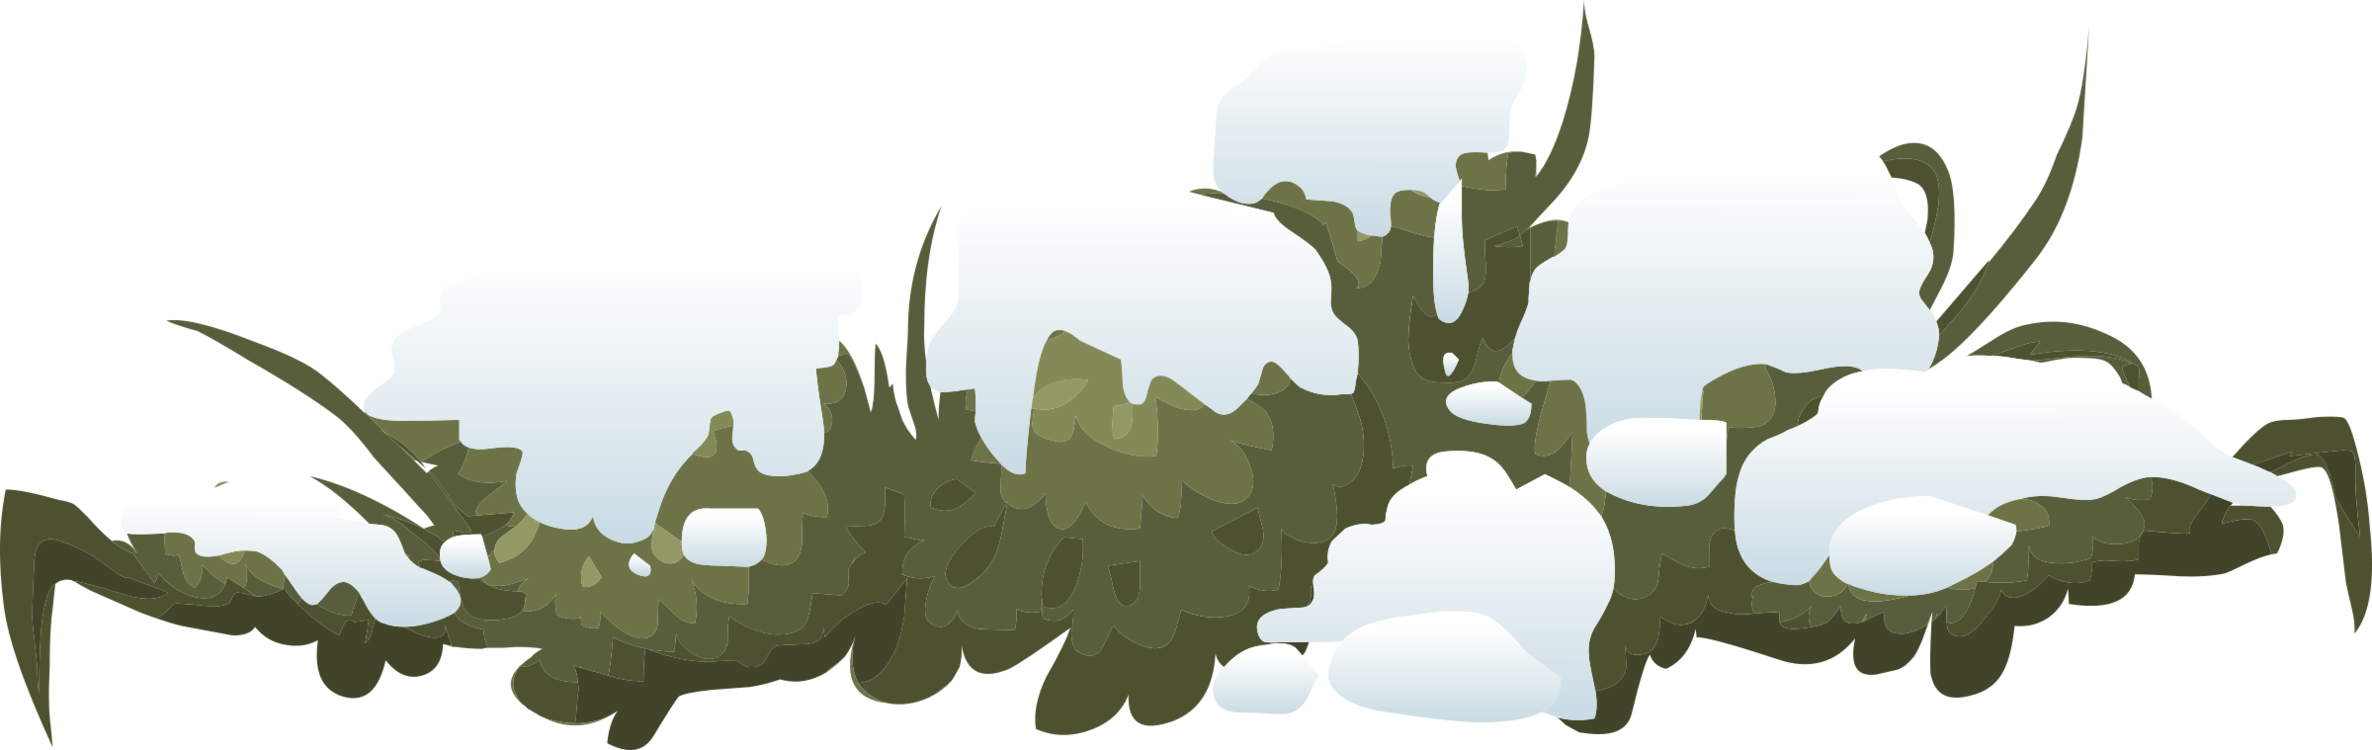 Bush clipart landscape. Shrub snow winter tree